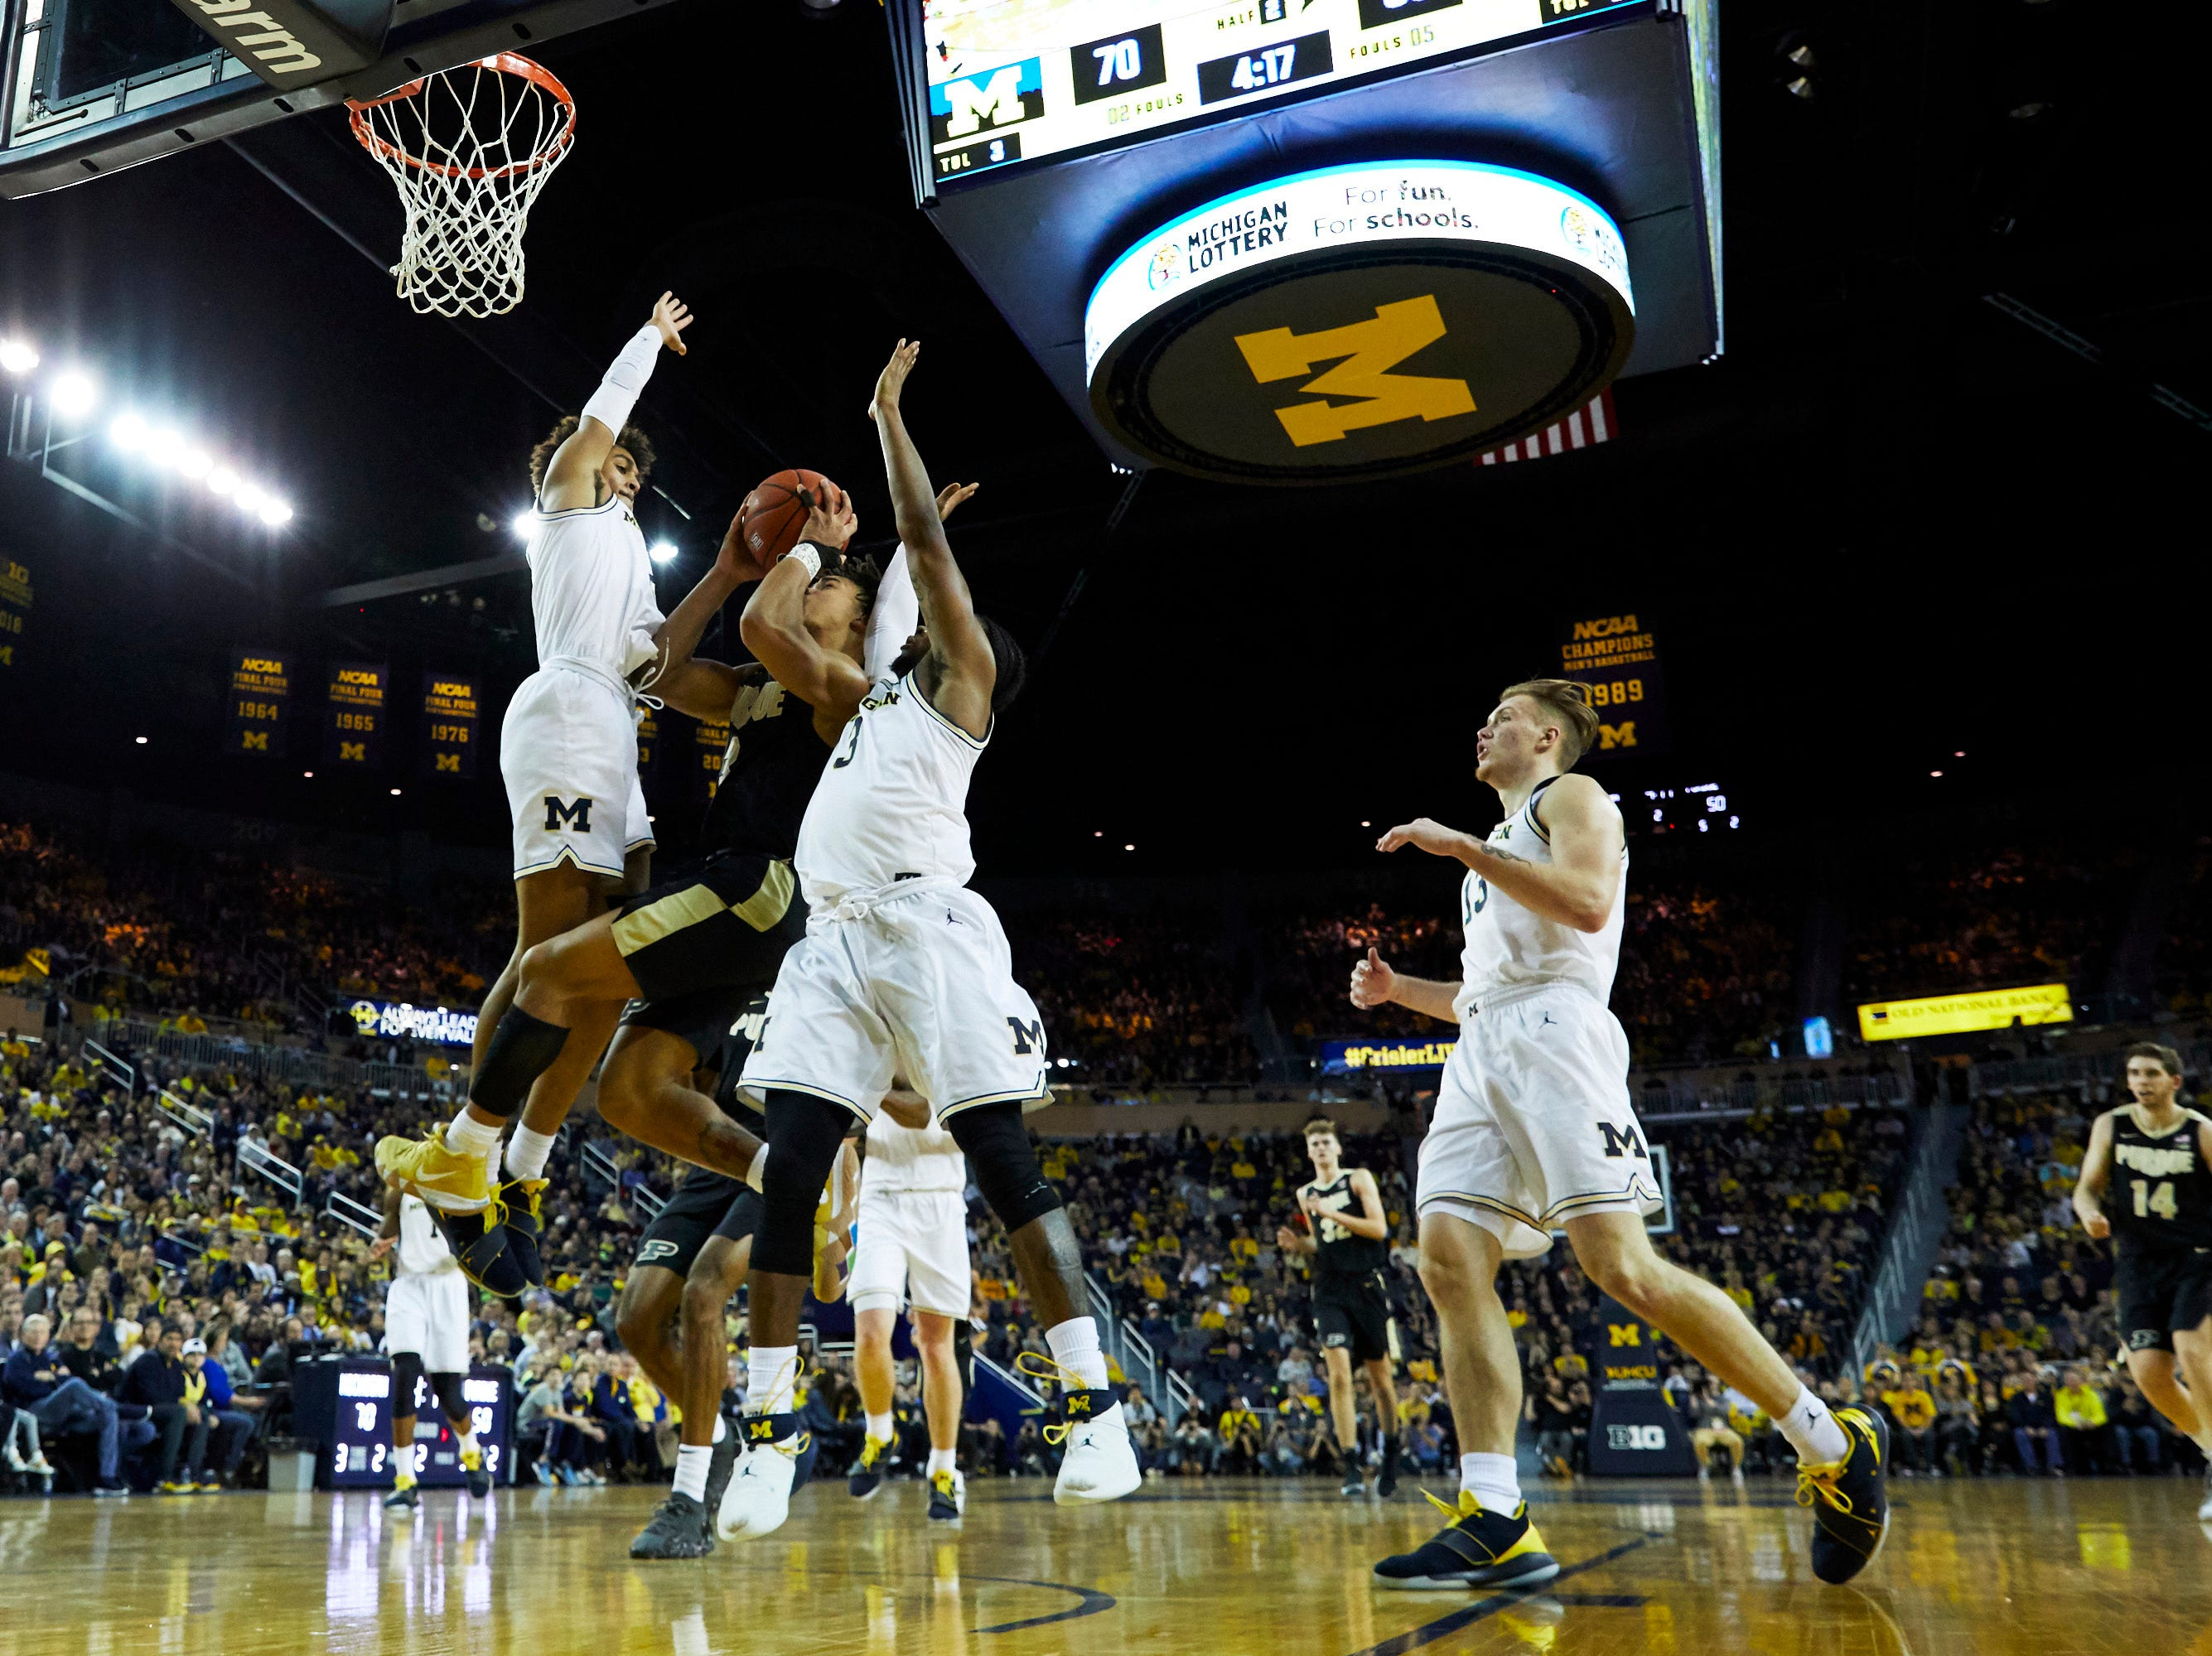 Dec 1, 2018; Ann Arbor, MI, USA; Michigan Wolverines guard Jordan Poole (2) drives  to the basket against Michigan Wolverines guard Jordan Poole (left) and guard Zavier Simpson (right) in the second half at Crisler Center. Mandatory Credit: Rick Osentoski-USA TODAY Sports